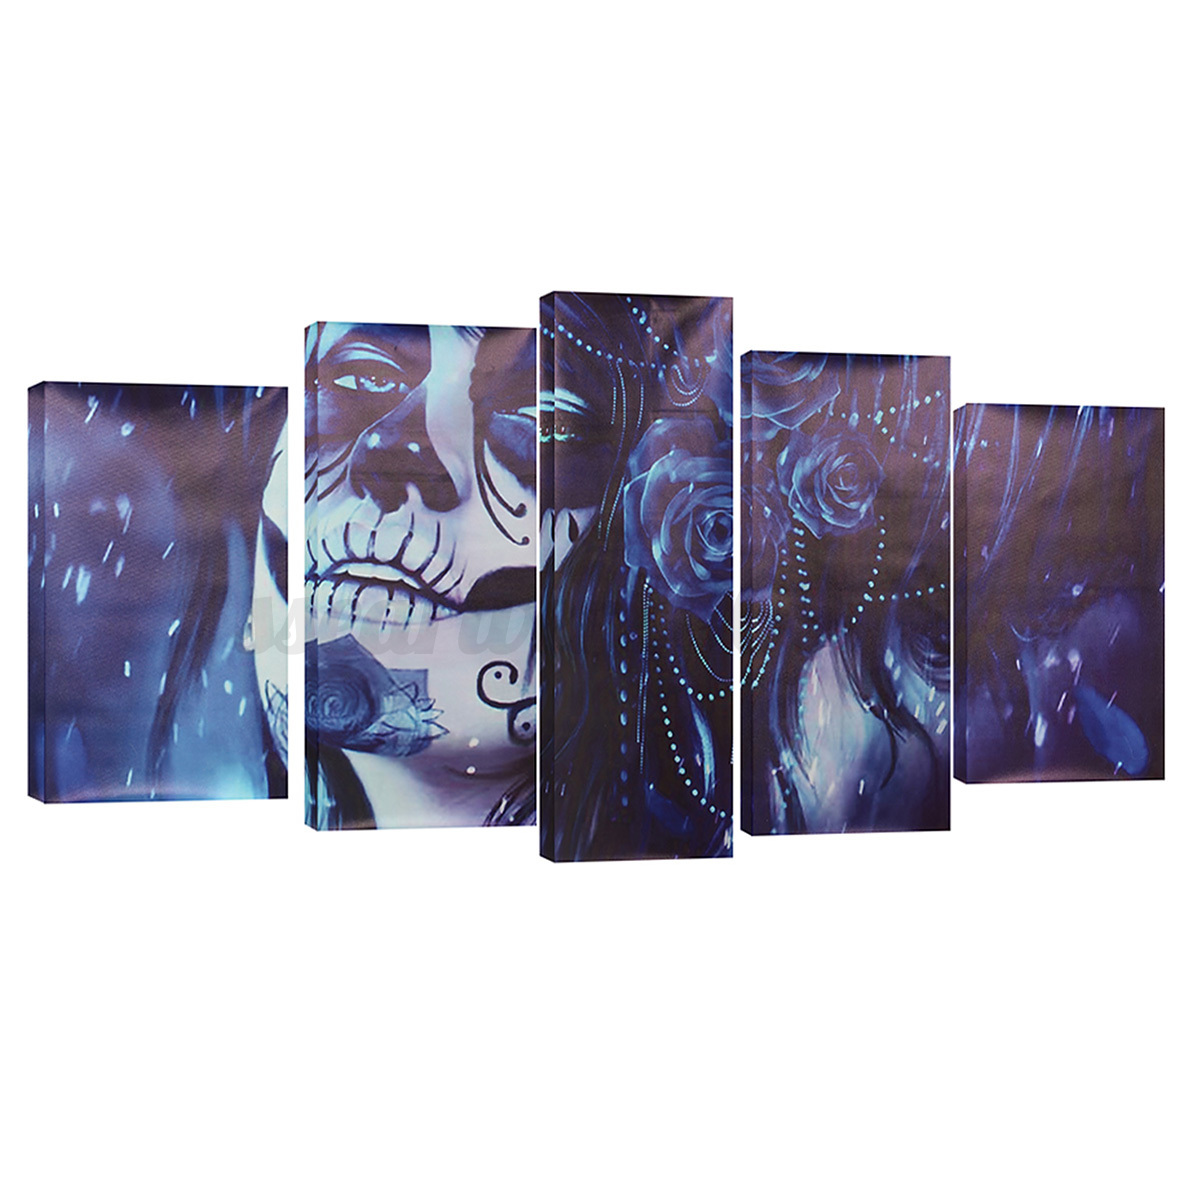 5pcs modern abstract canvas painting print picture wall art home decor no frame ebay - Canvas prints home decor photos ...